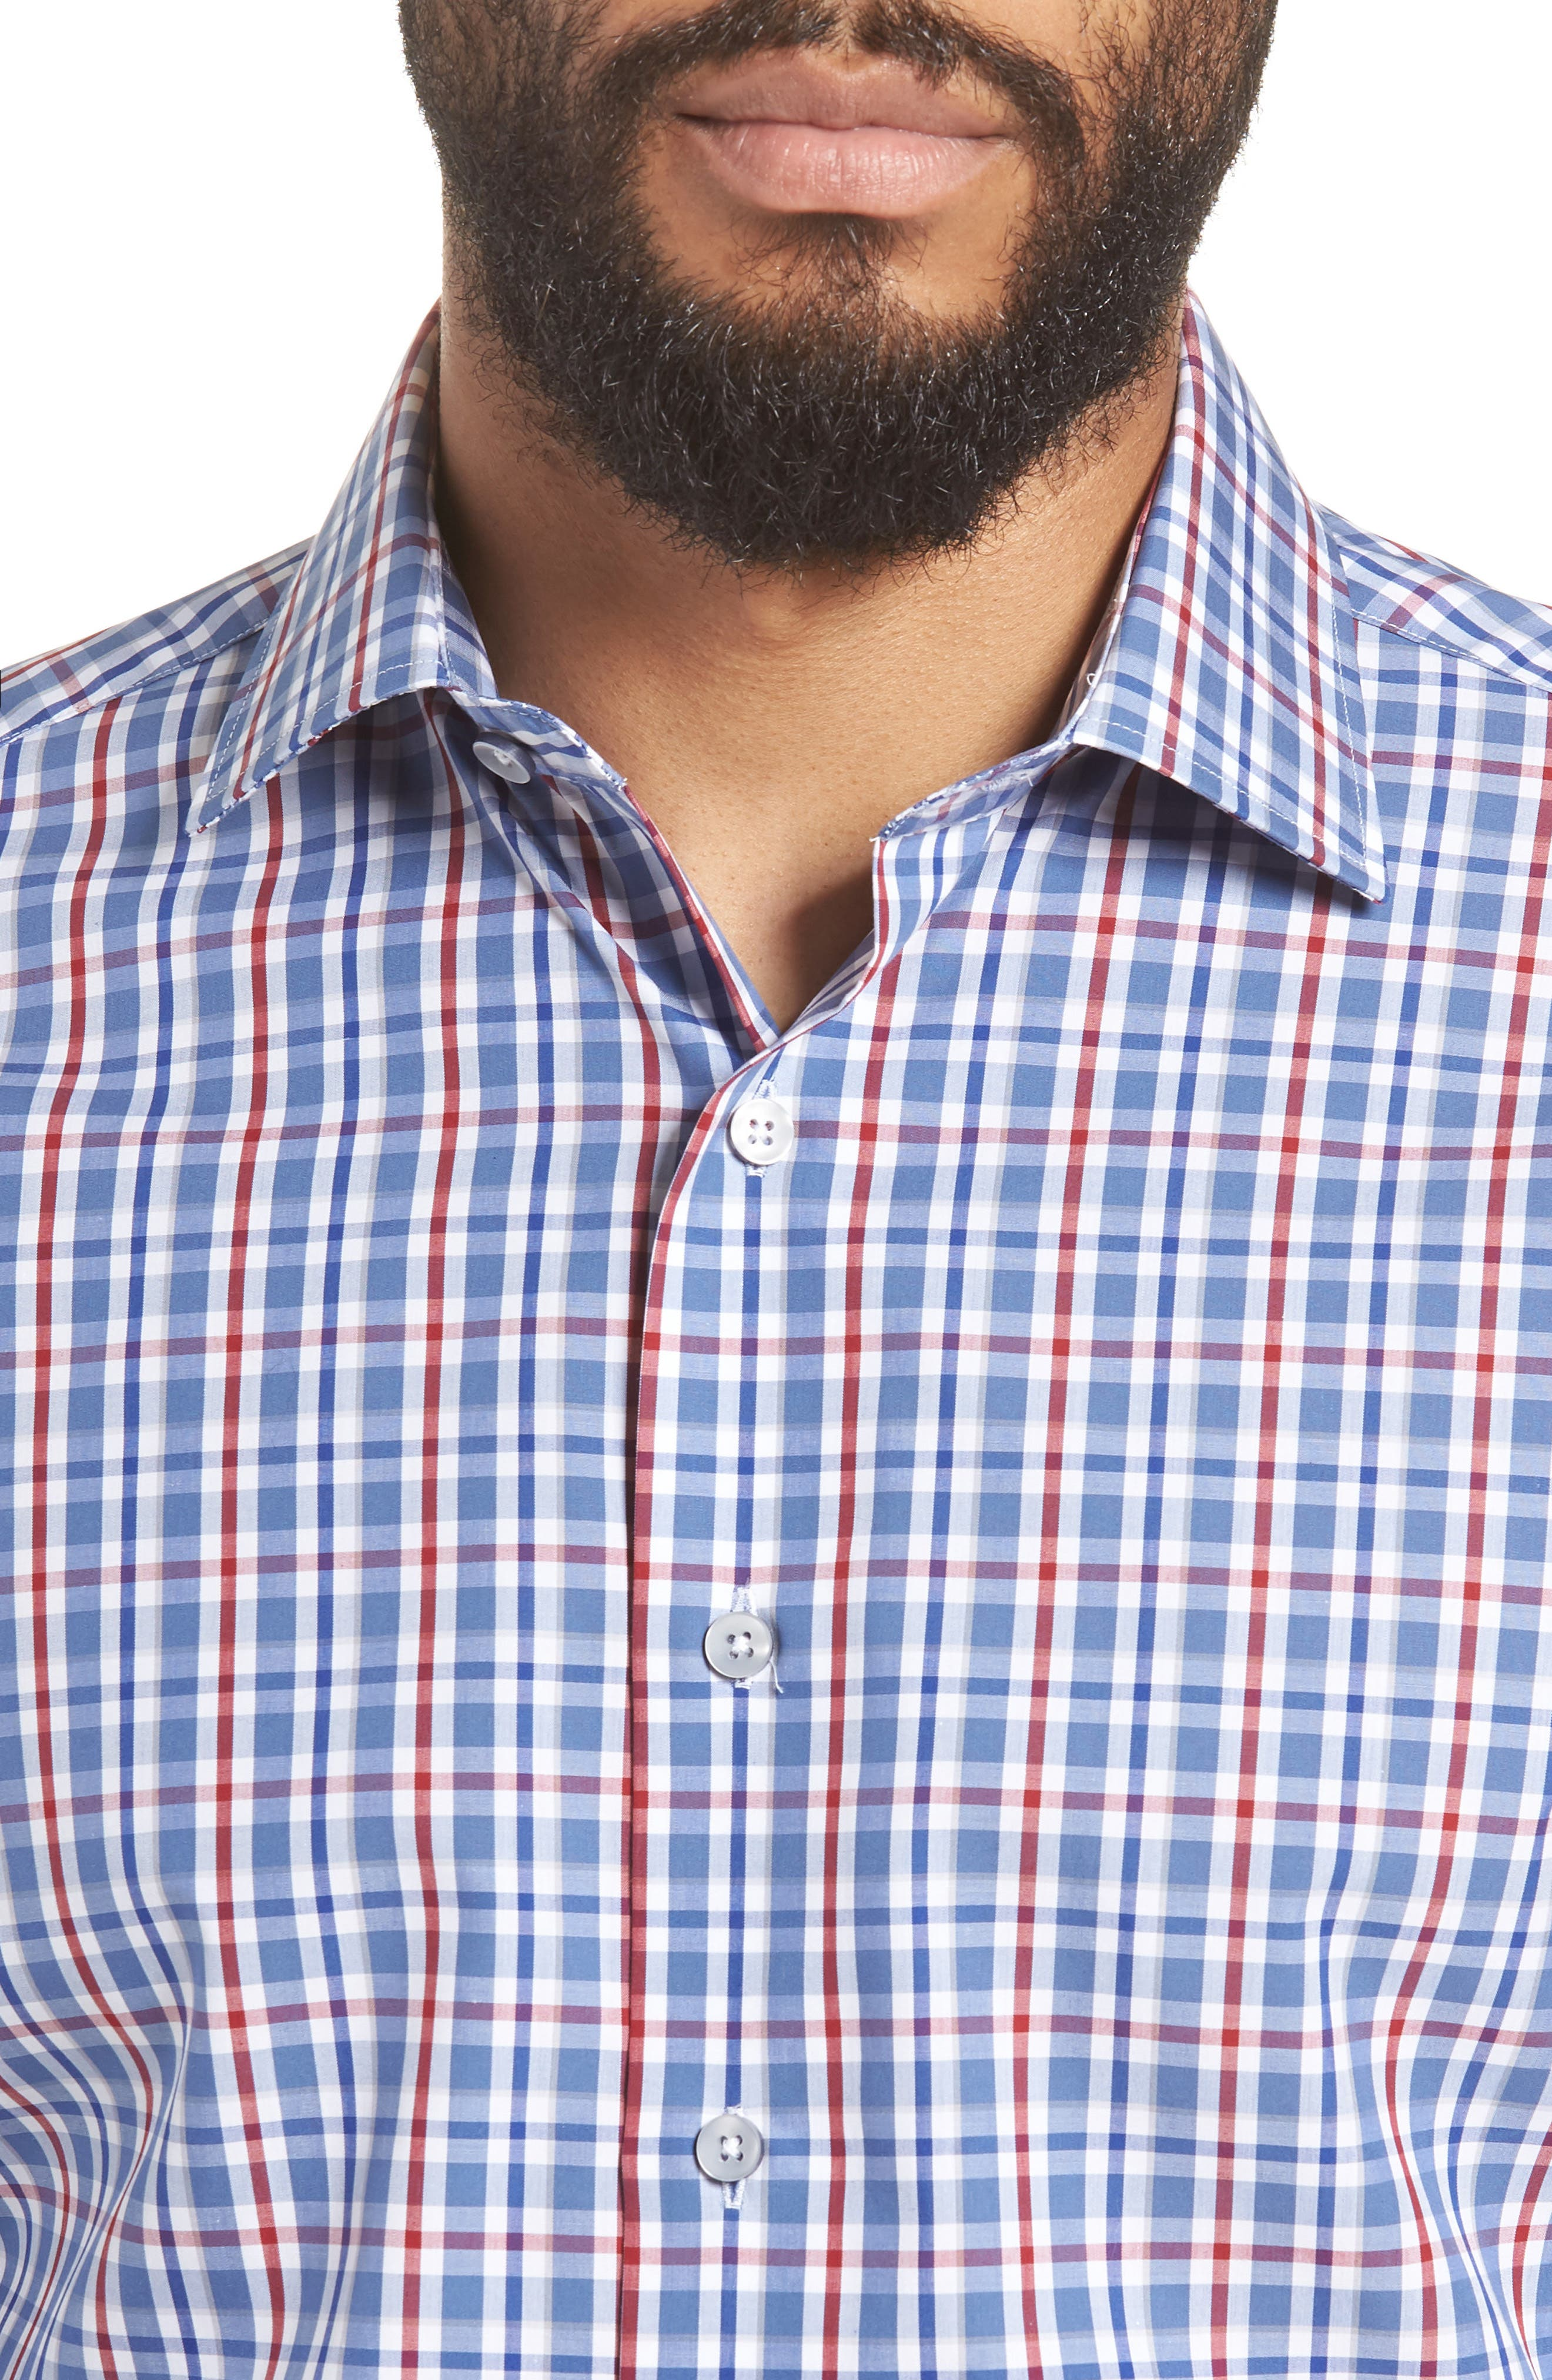 Trim Fit Plaid Dress Shirt,                             Alternate thumbnail 2, color,                             410